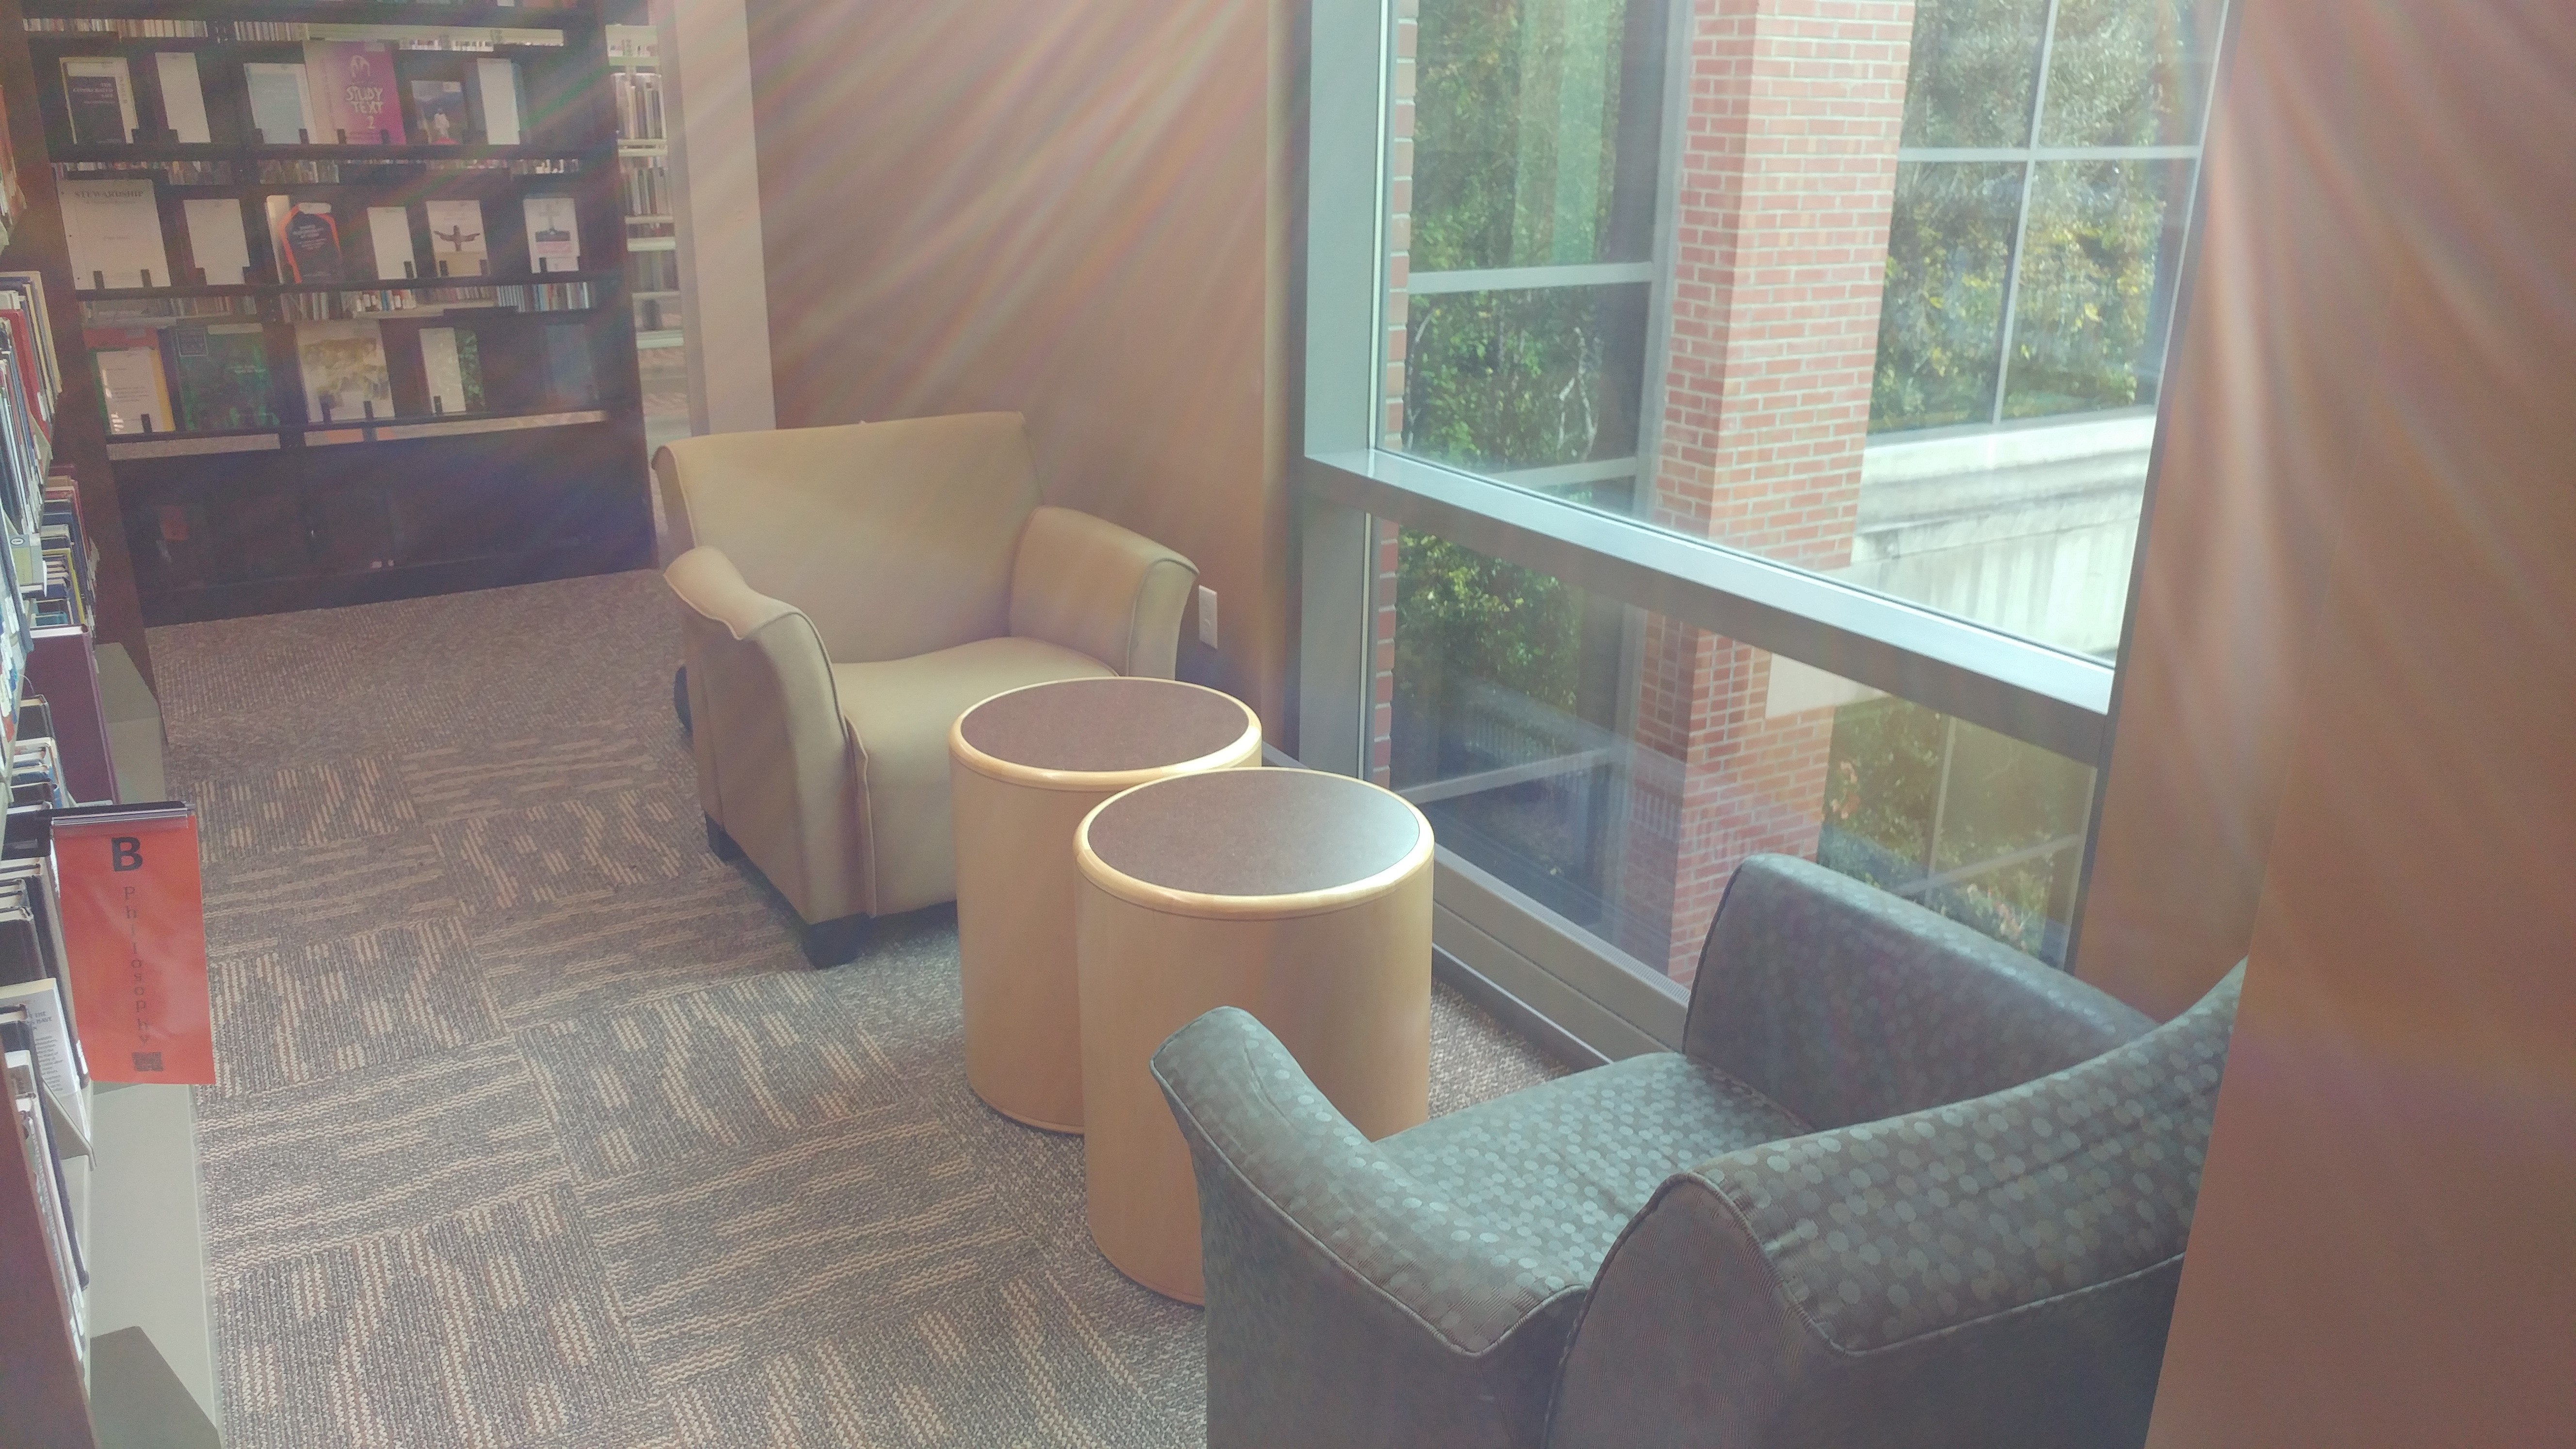 Chairs by window on second floor of library